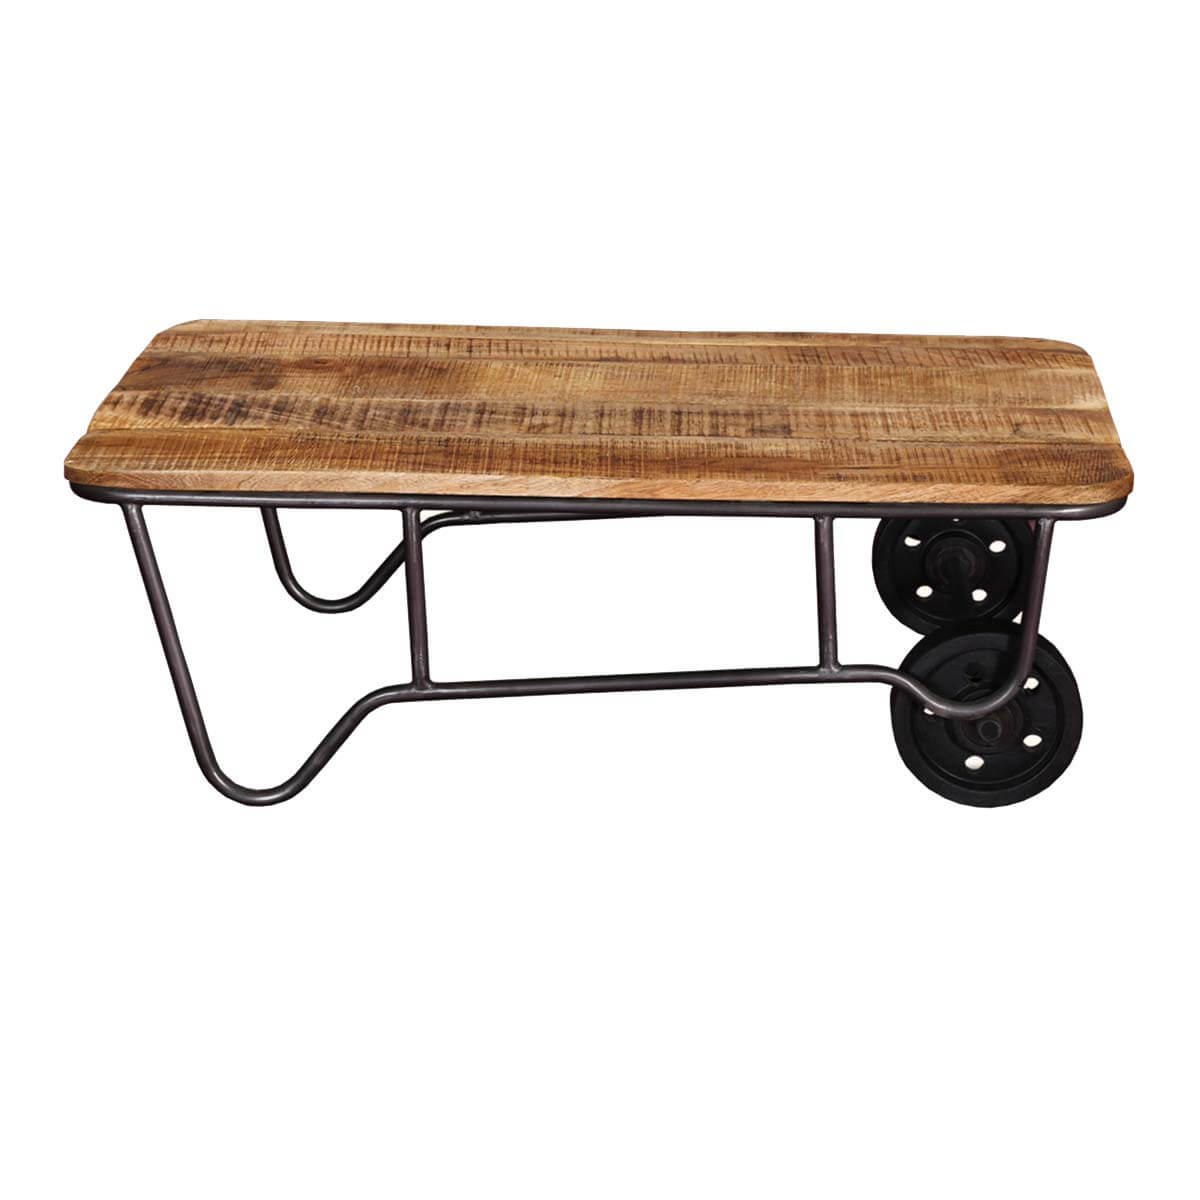 Industrial rustic mango wood iron rolling coffee table Rustic iron coffee table